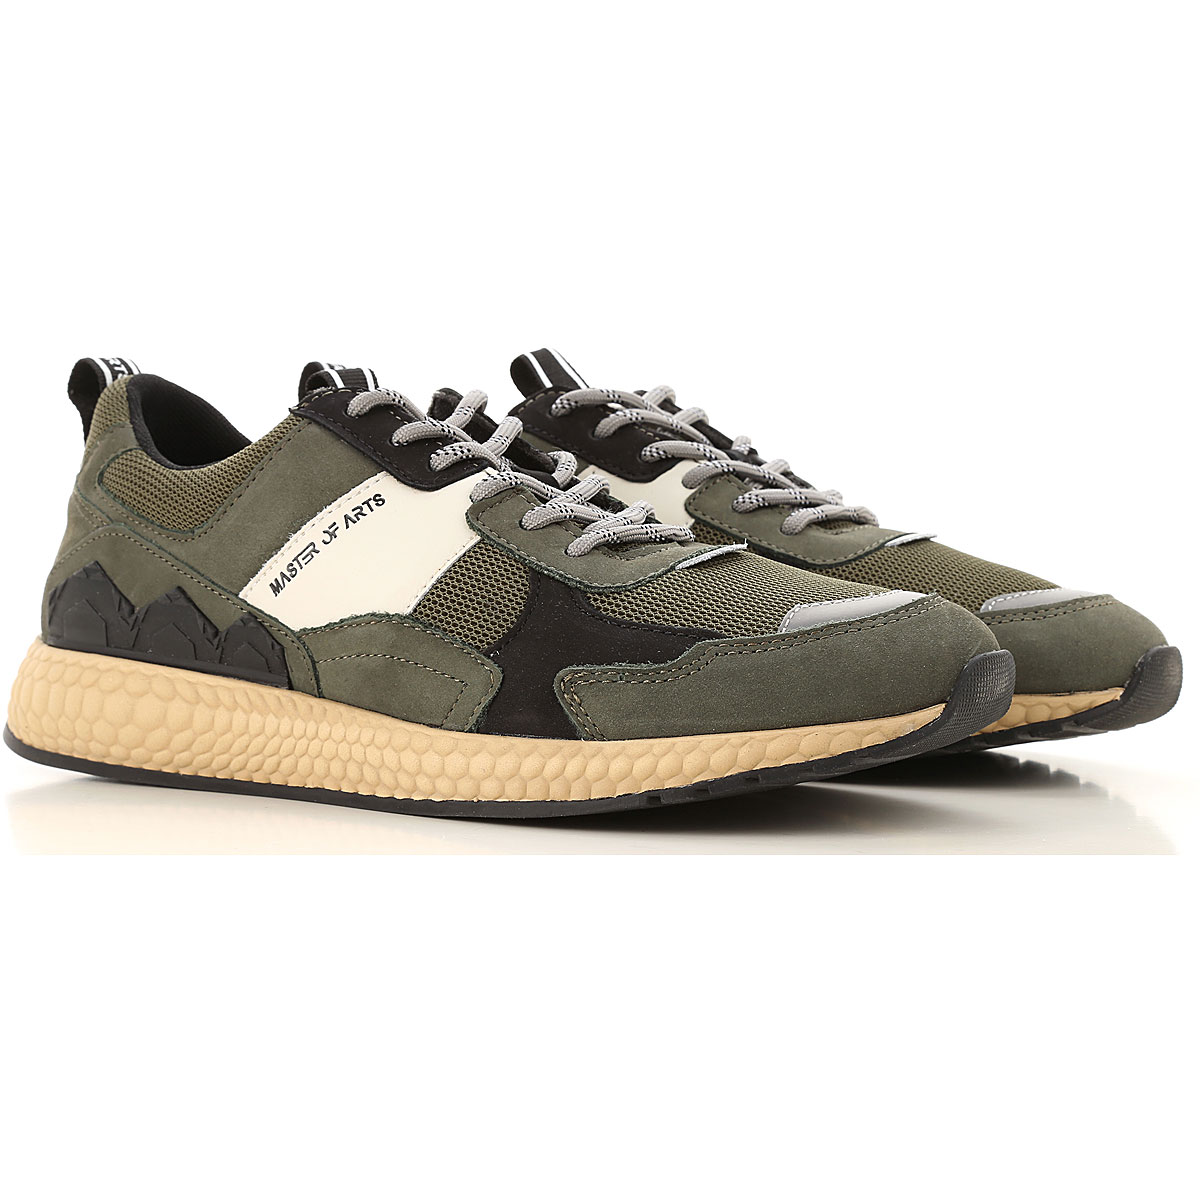 Moa Master of Arts Sneakers for Men Military Green USA - GOOFASH